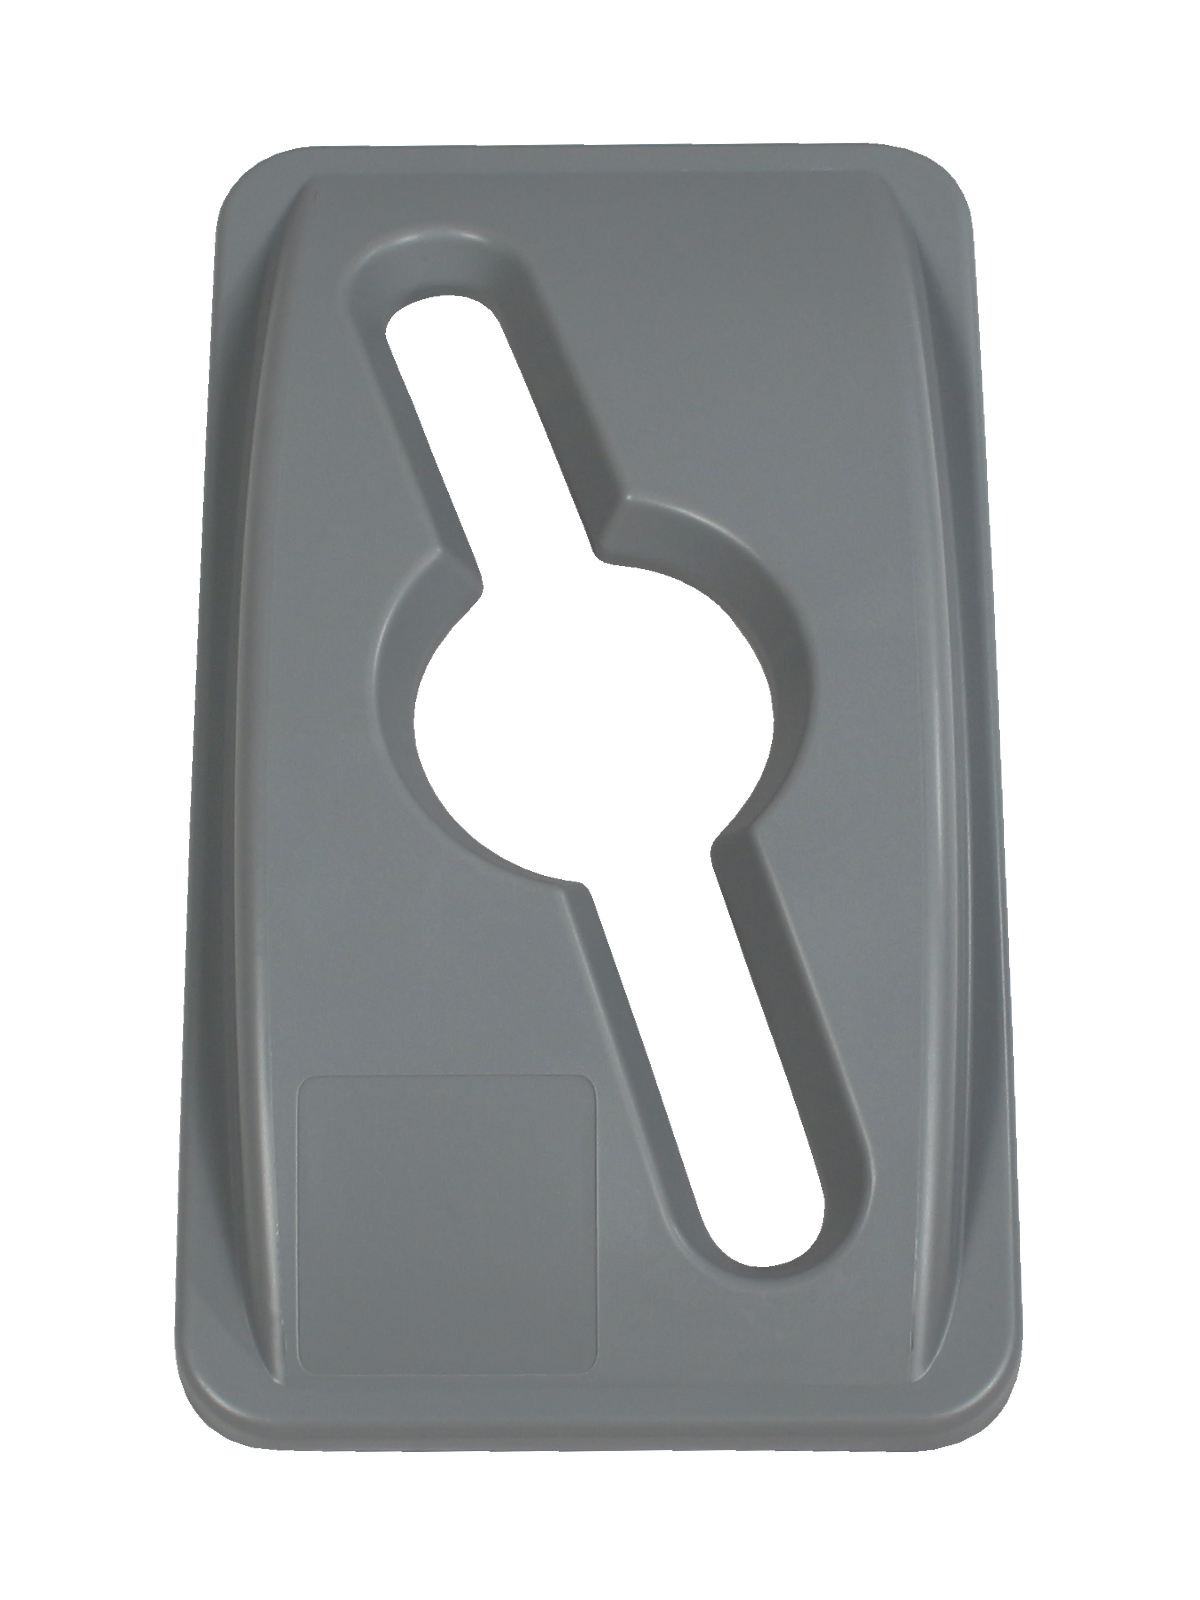 WASTE WATCHER - Lid - Mixed - Executive Grey